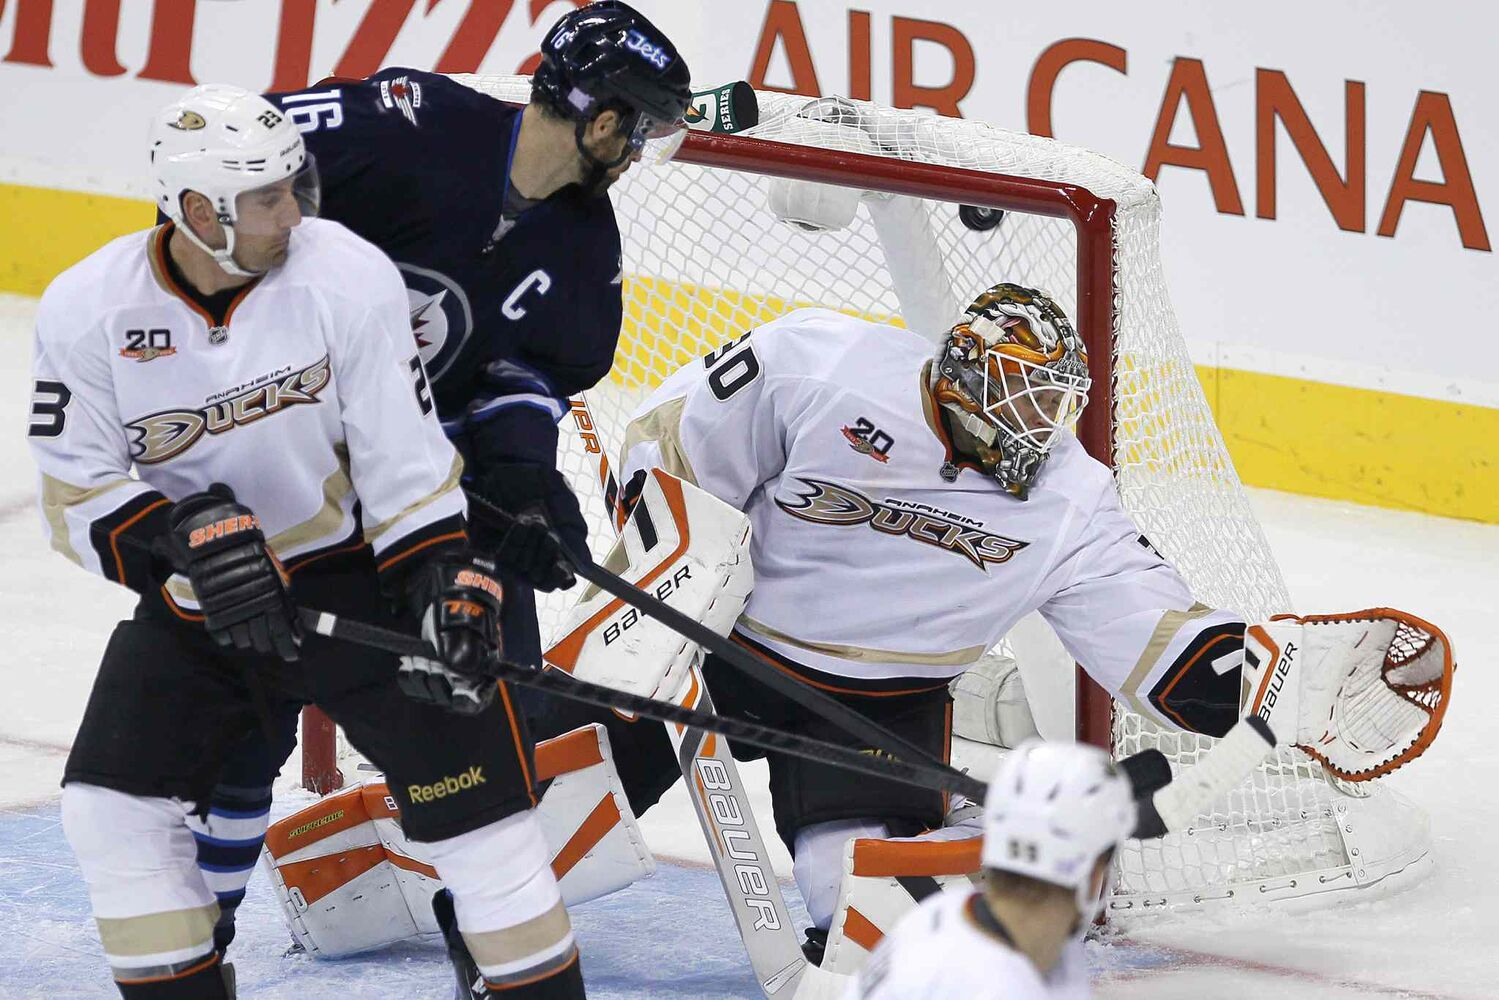 Winnipeg Jets' Andrew Ladd tips Blake Wheeler's shot past Anaheim Ducks goaltender Viktor Fasth as Francois Beauchemin defends in the first period.